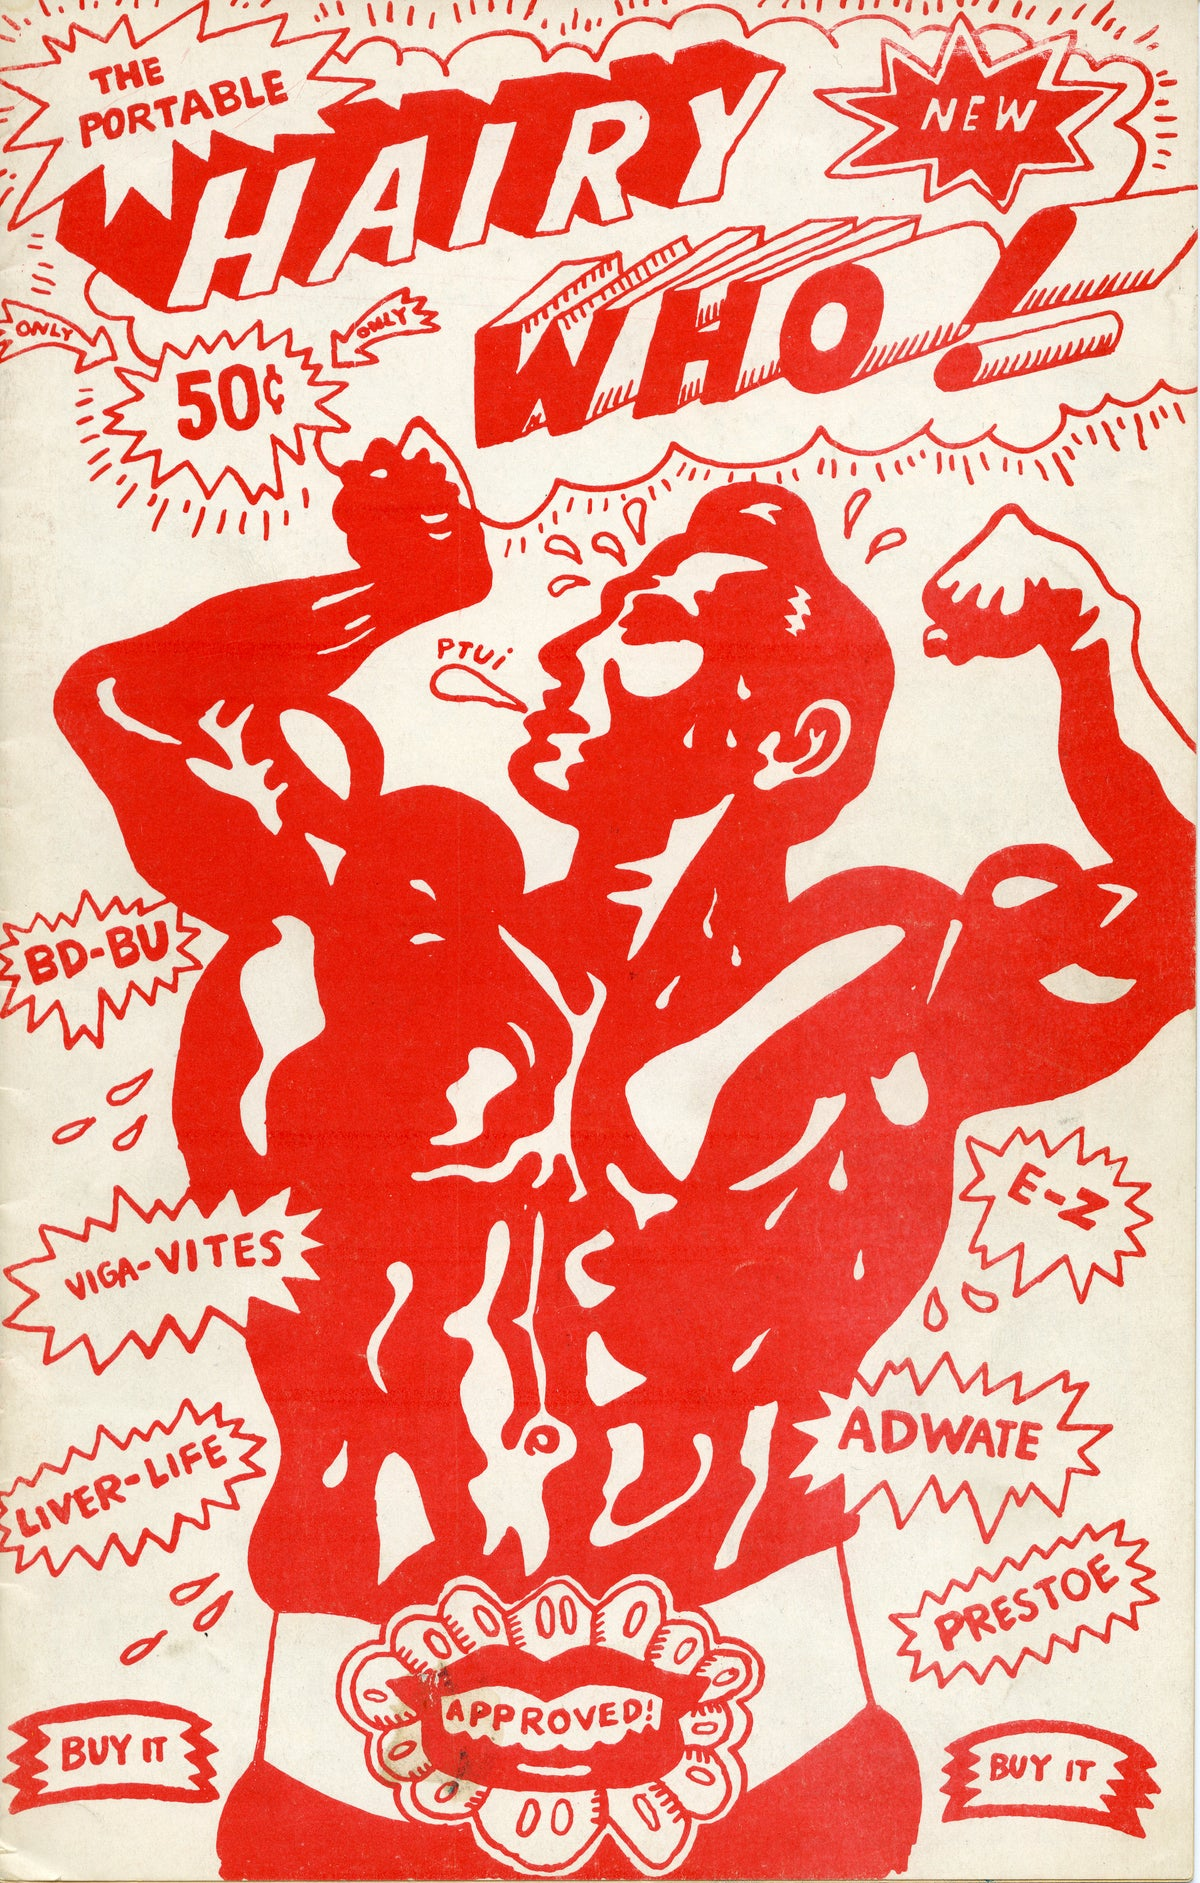 Image of Art Green, front cover for The Portable Hairy Who!, 1966